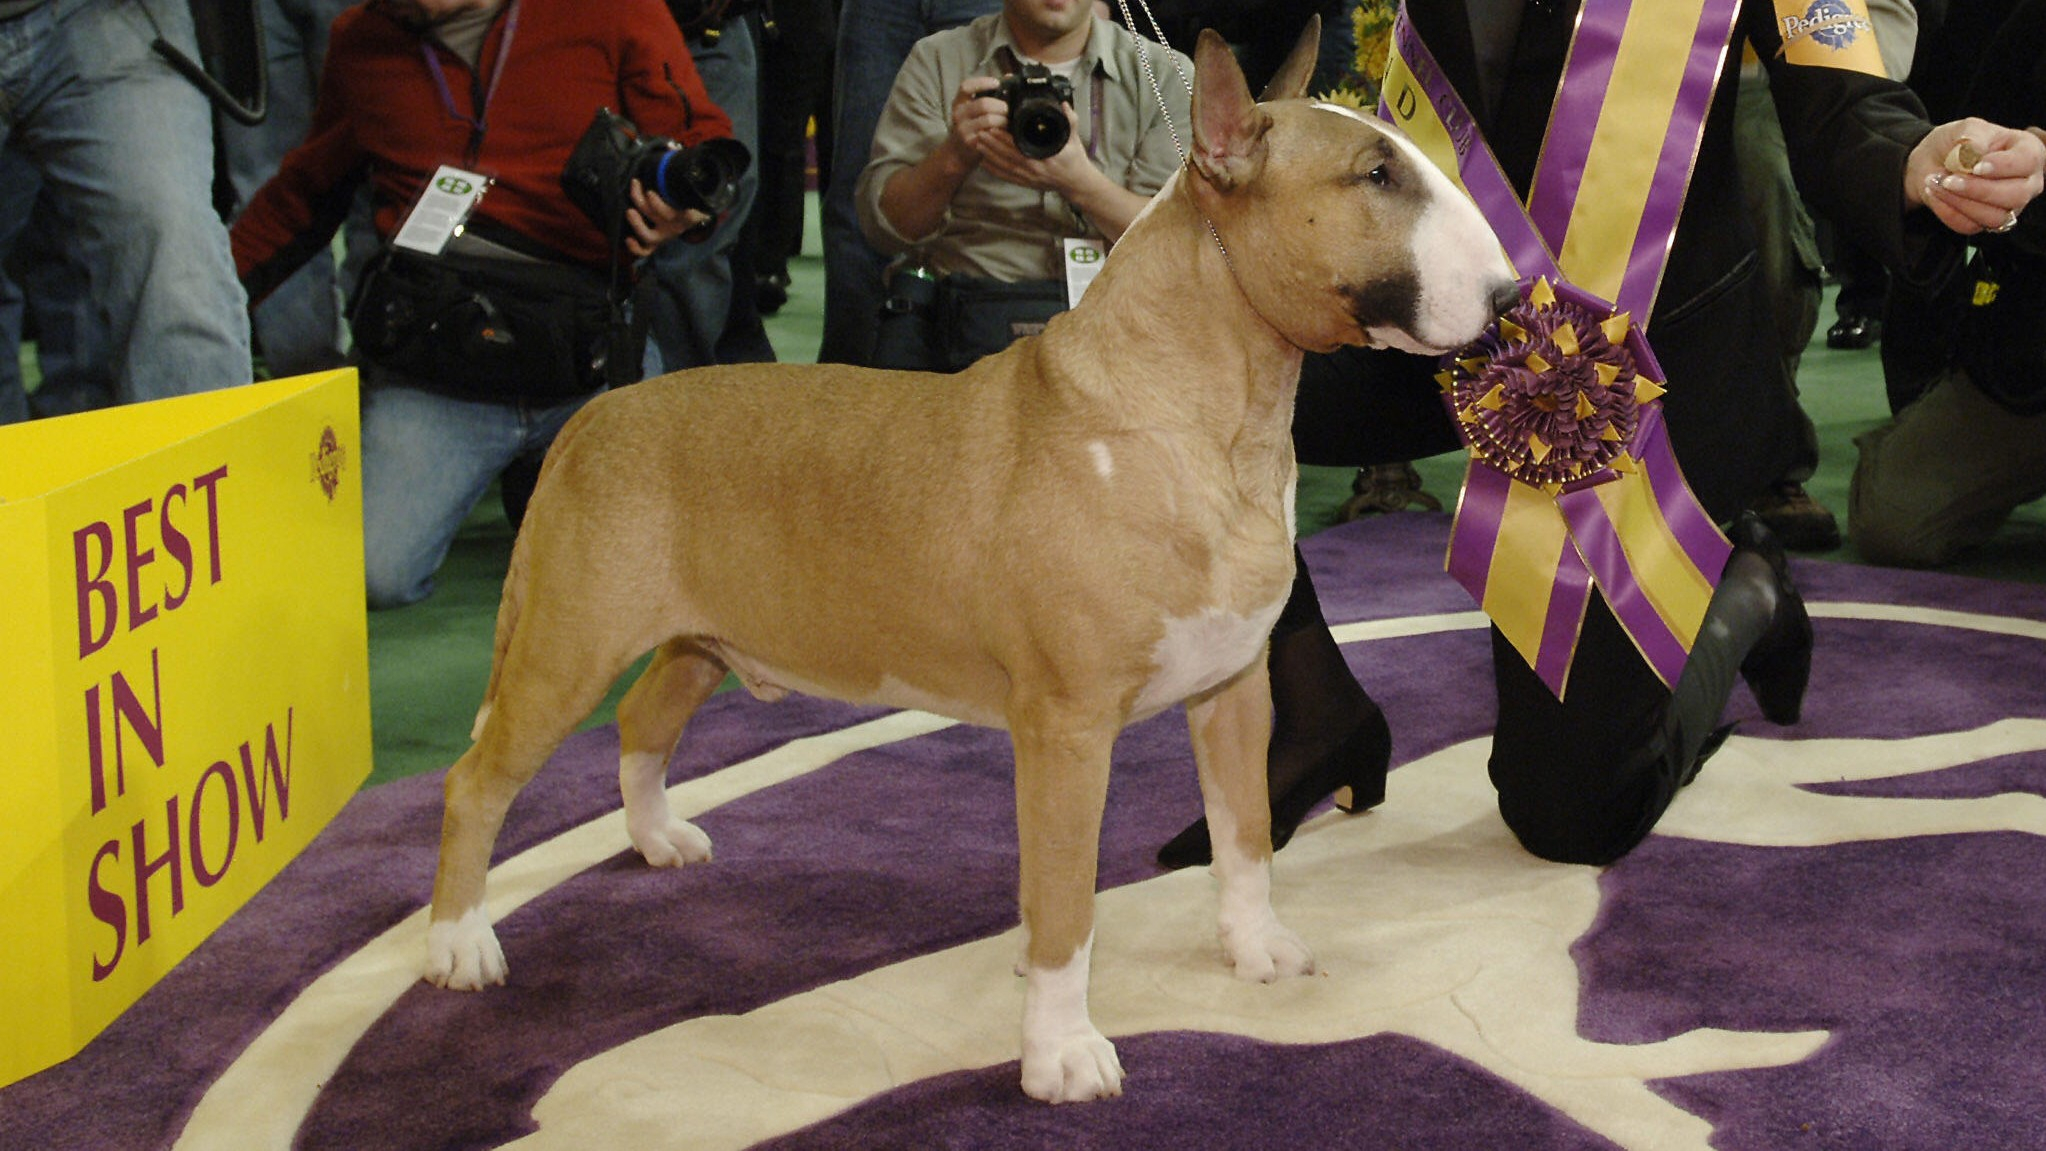 Westminster Dog Show schedule 2021: Dates, times, TV channels, live stream & list of past winners